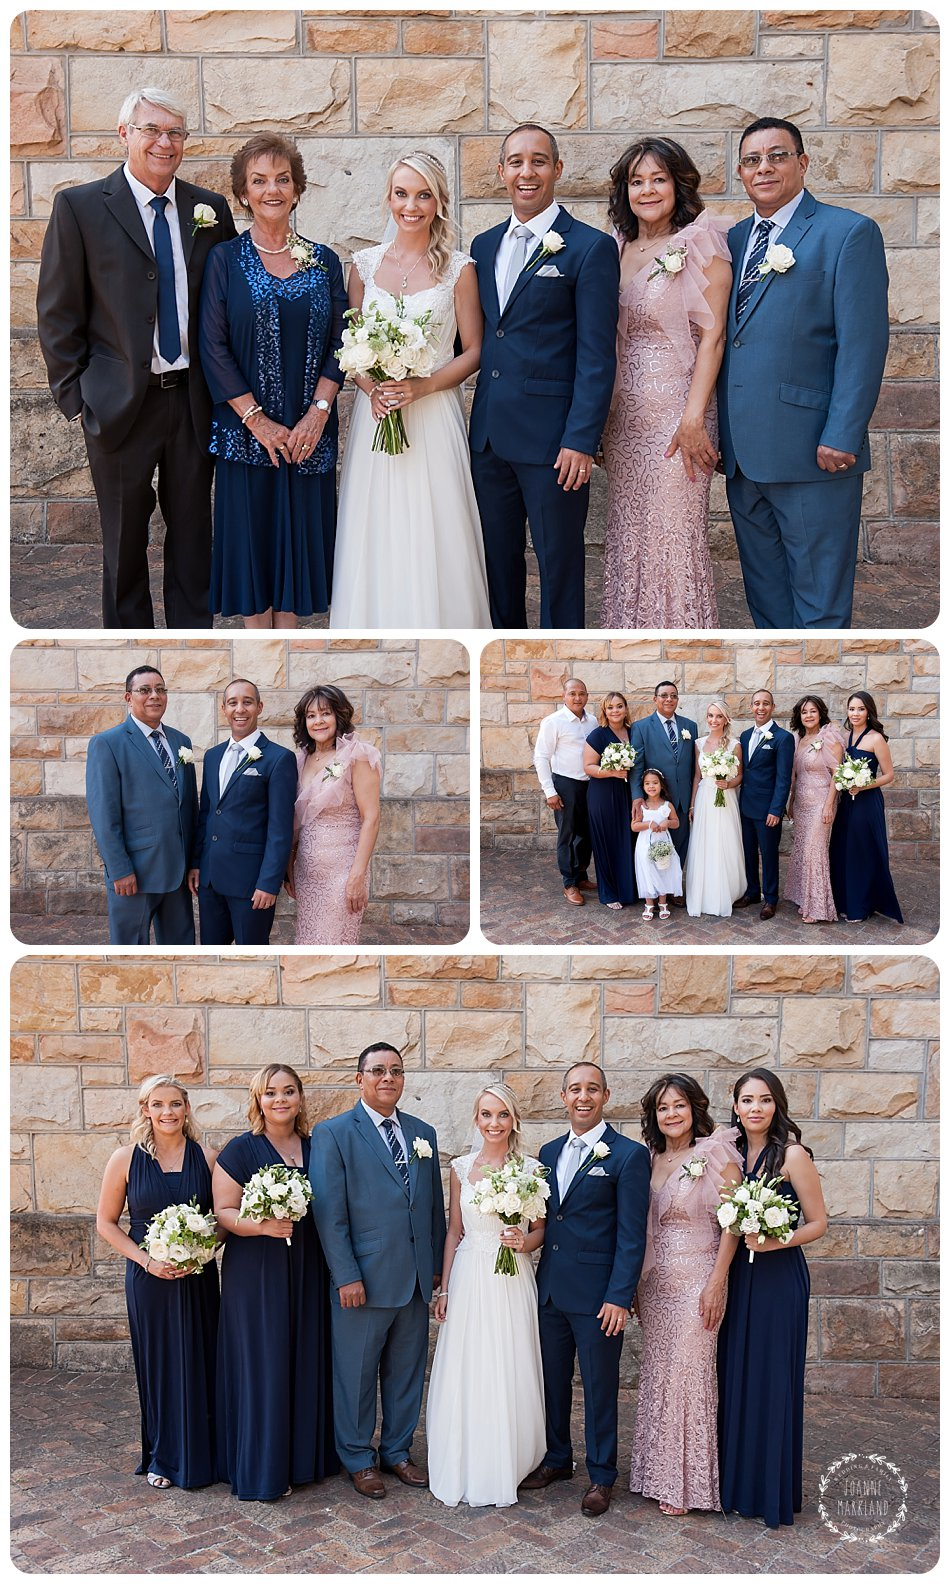 Steenberg_wedding_cape_town_photography_joanne_markland_photographer-034